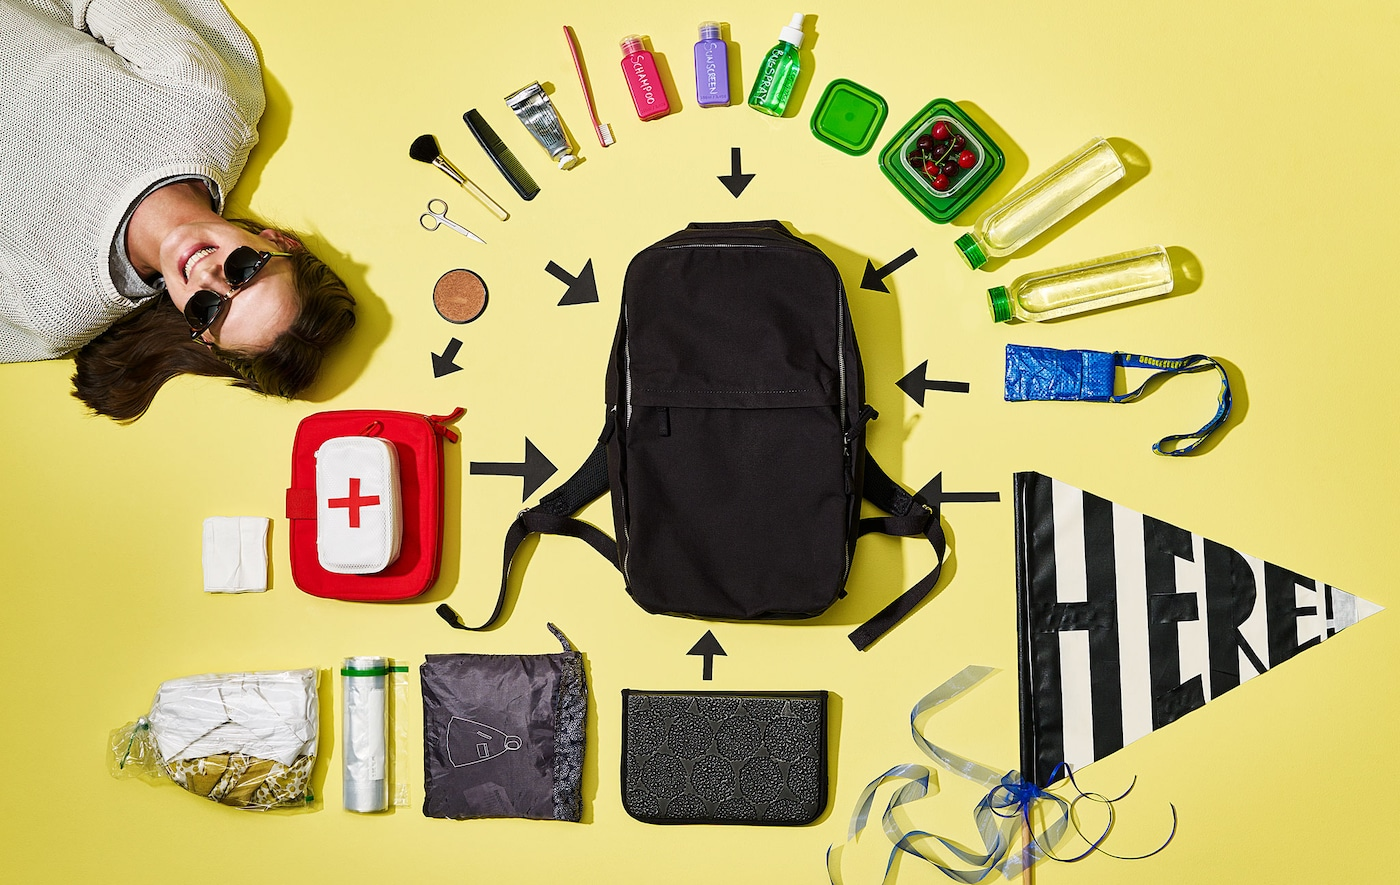 A shot from above shows the contents of a backpack neatly organised on a yellow background.